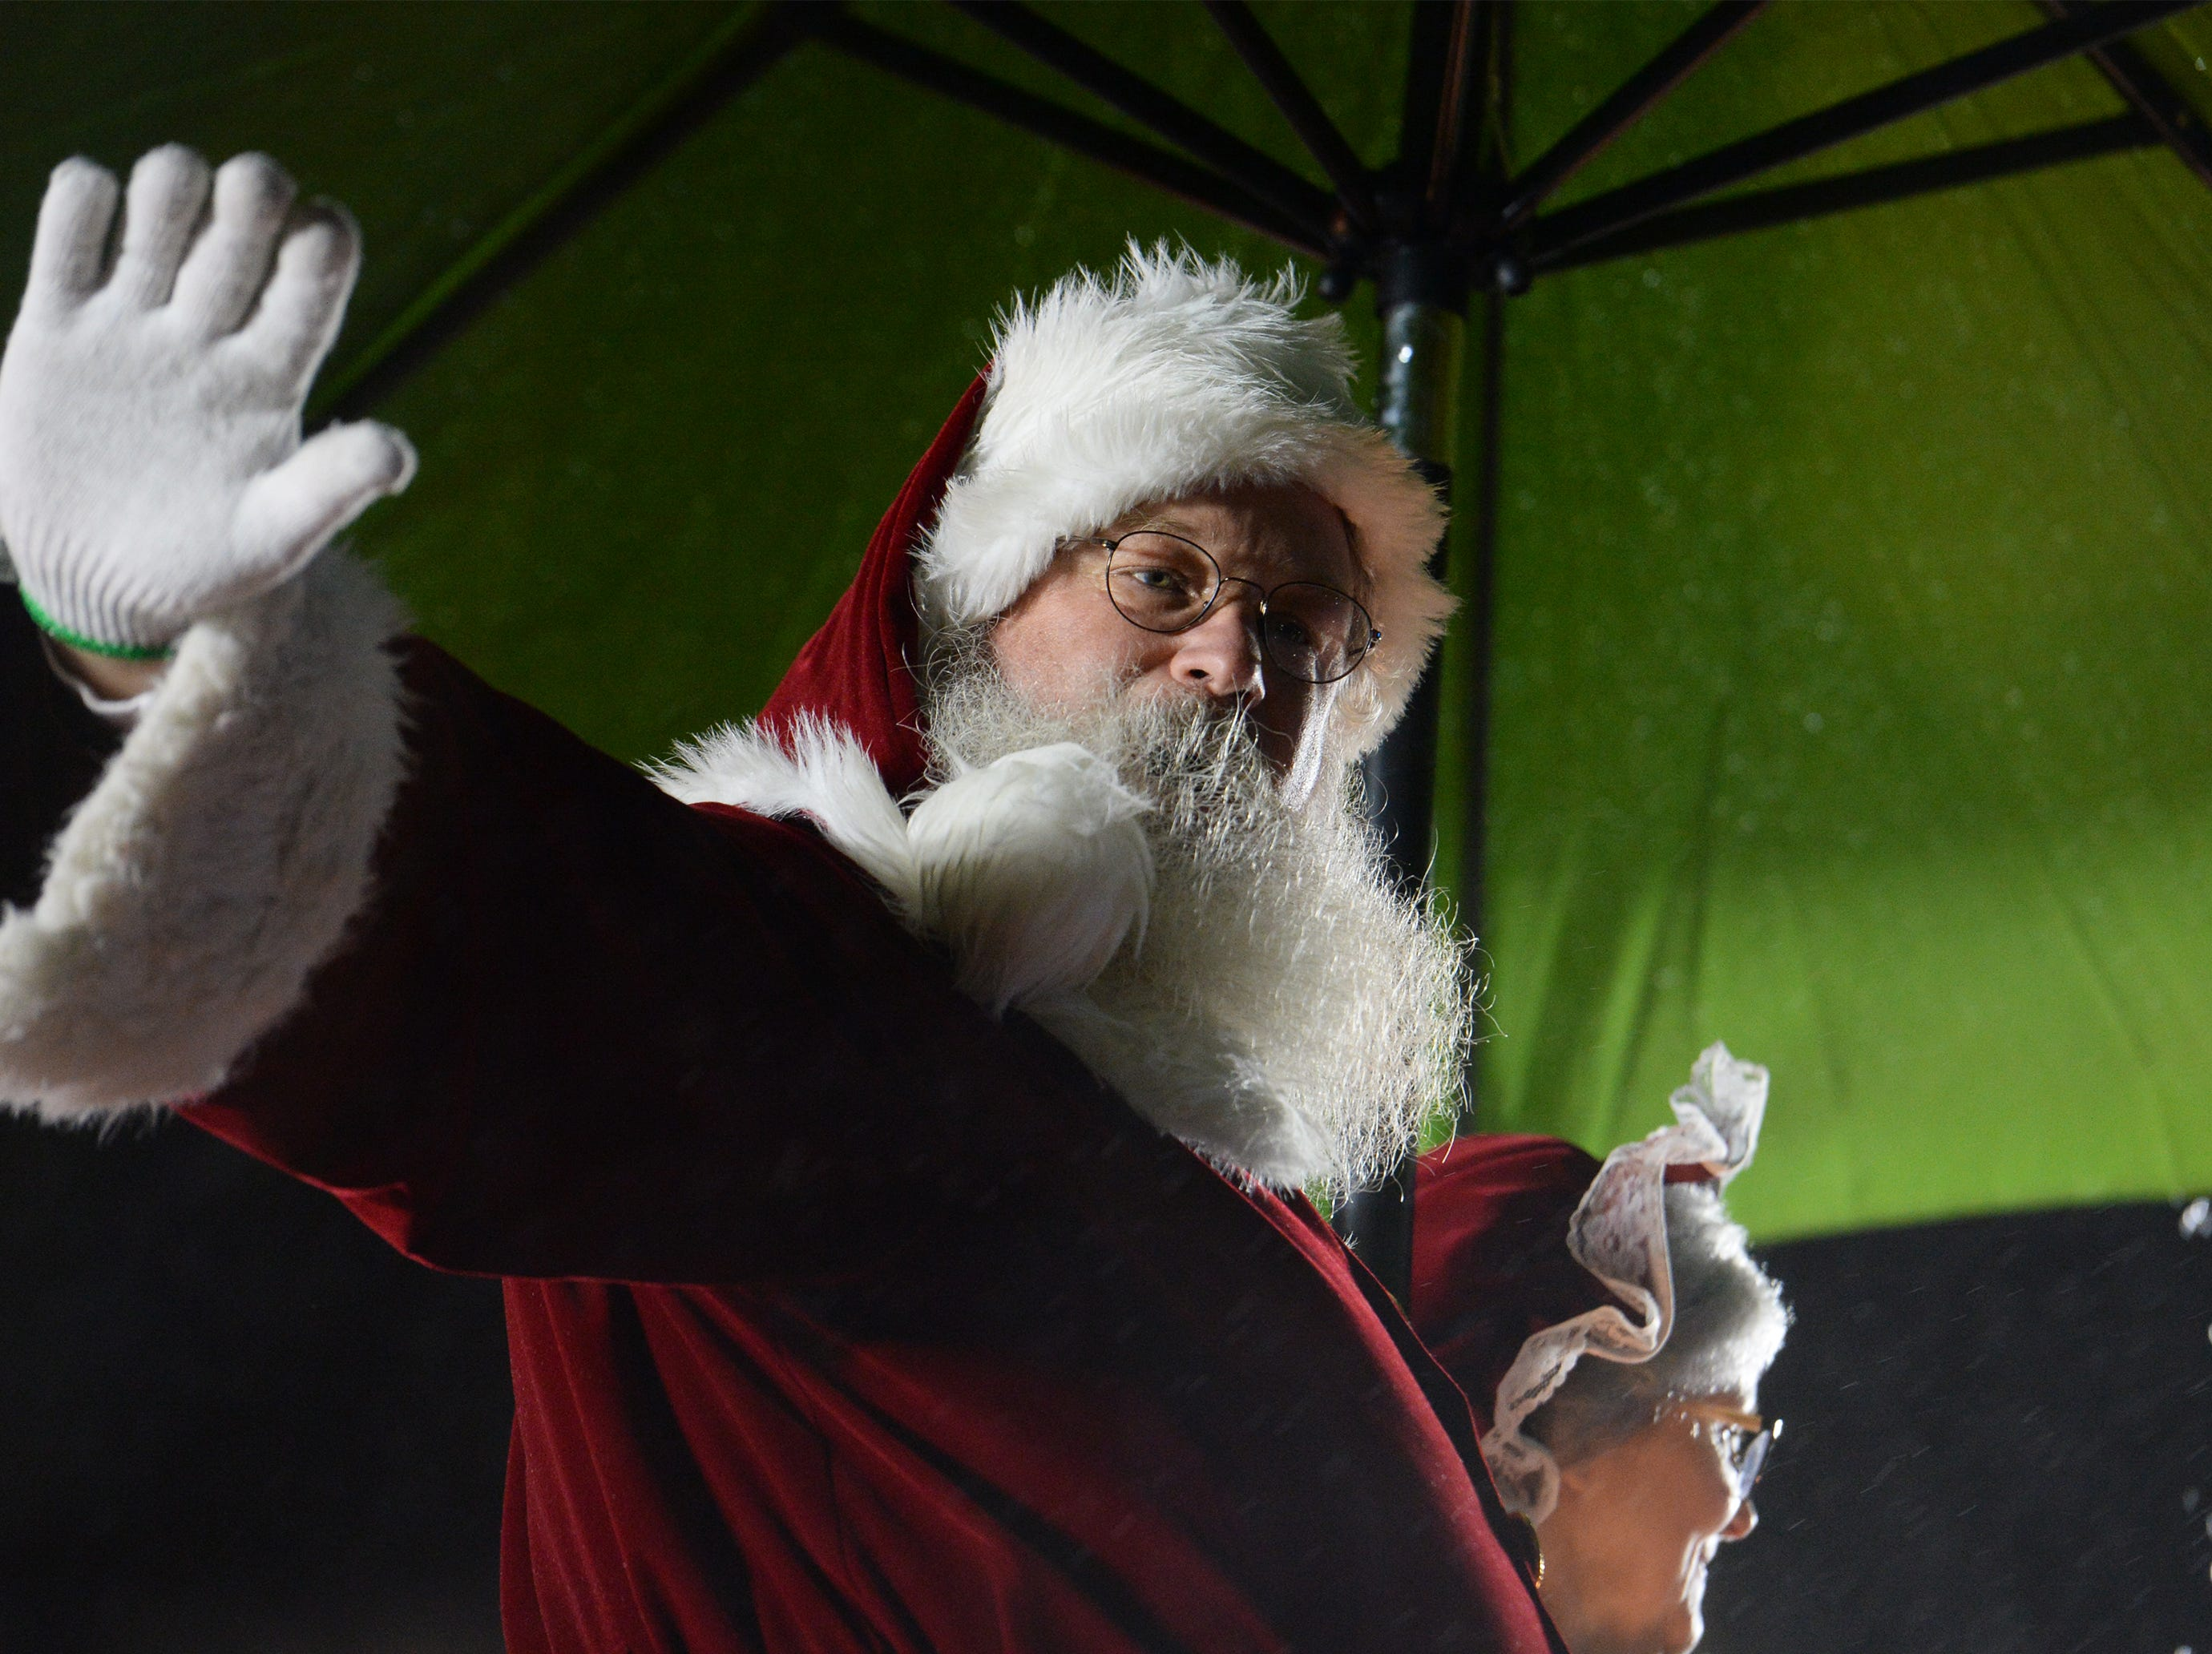 Santa waves to the crowd during the Greenville Poinsettia Christmas Parade Saturday, Dec. 1, 2018 in downtown Greenville.